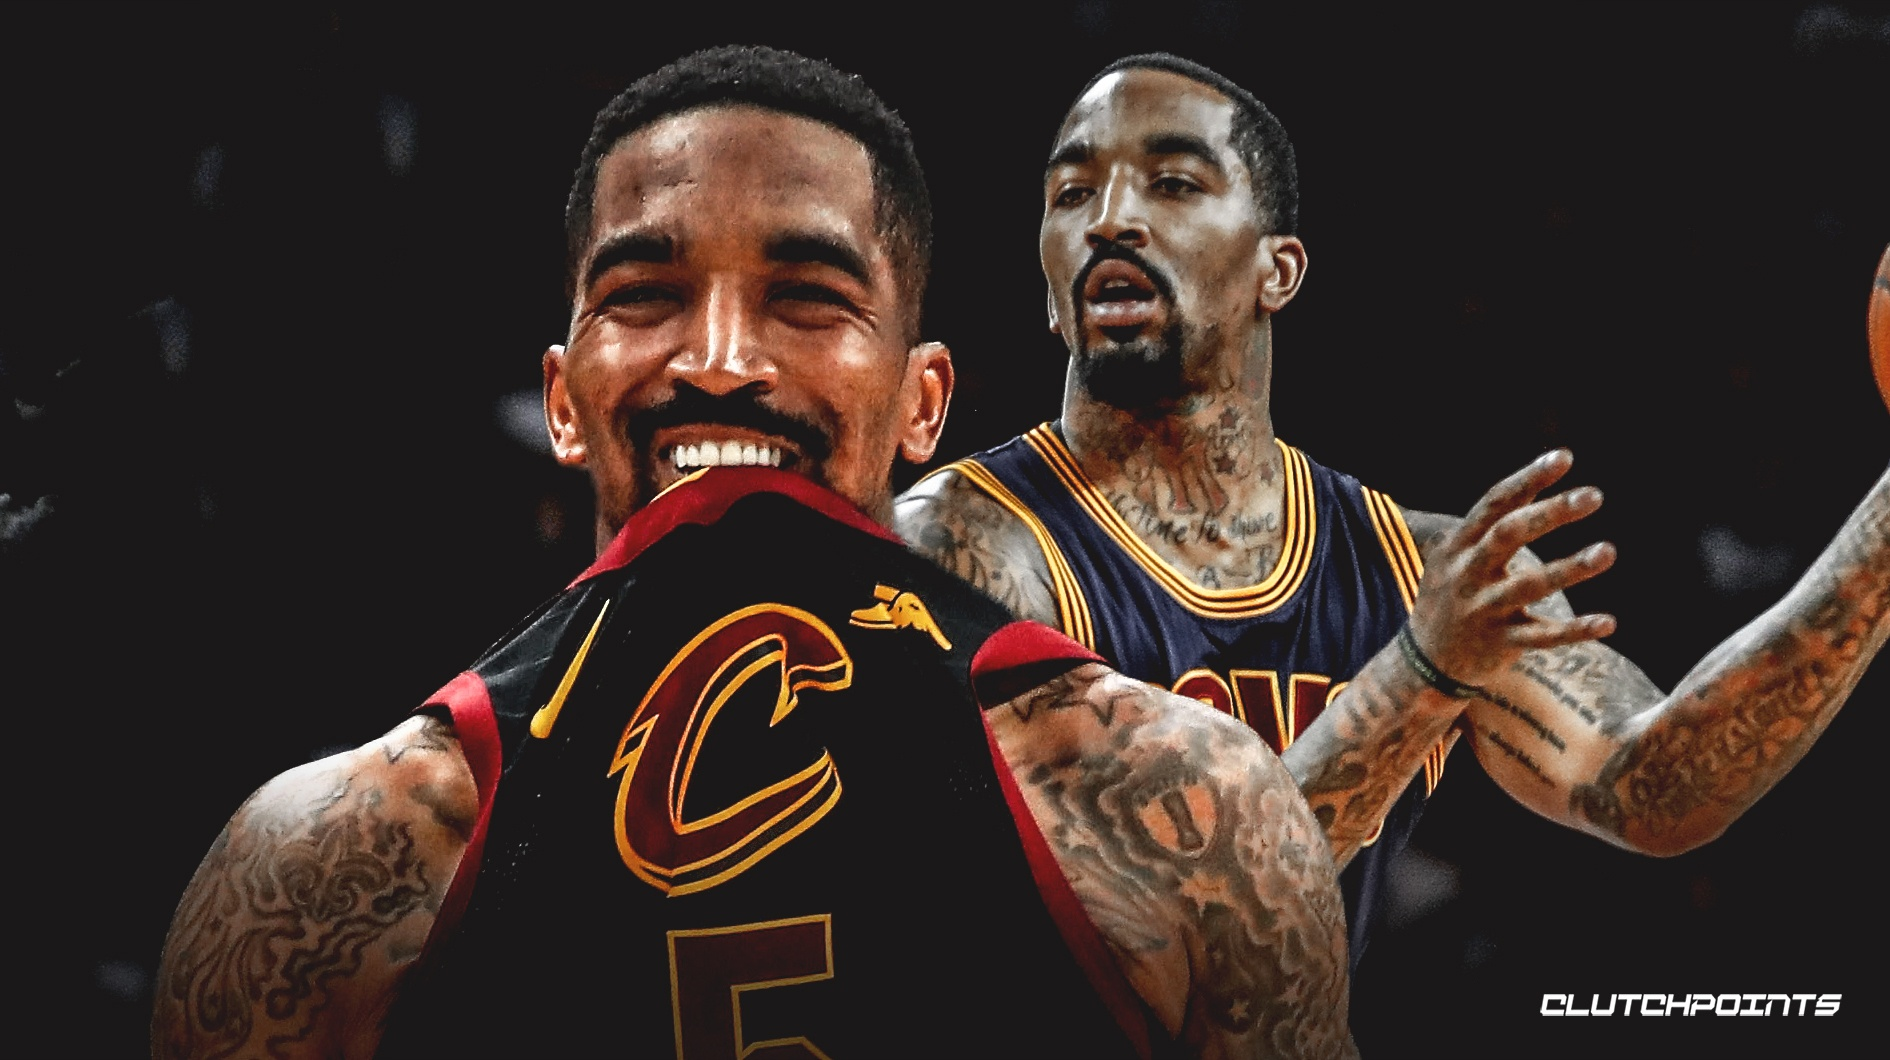 RUMOR: Odds increasing that J.R. Smith will be waived instead of traded